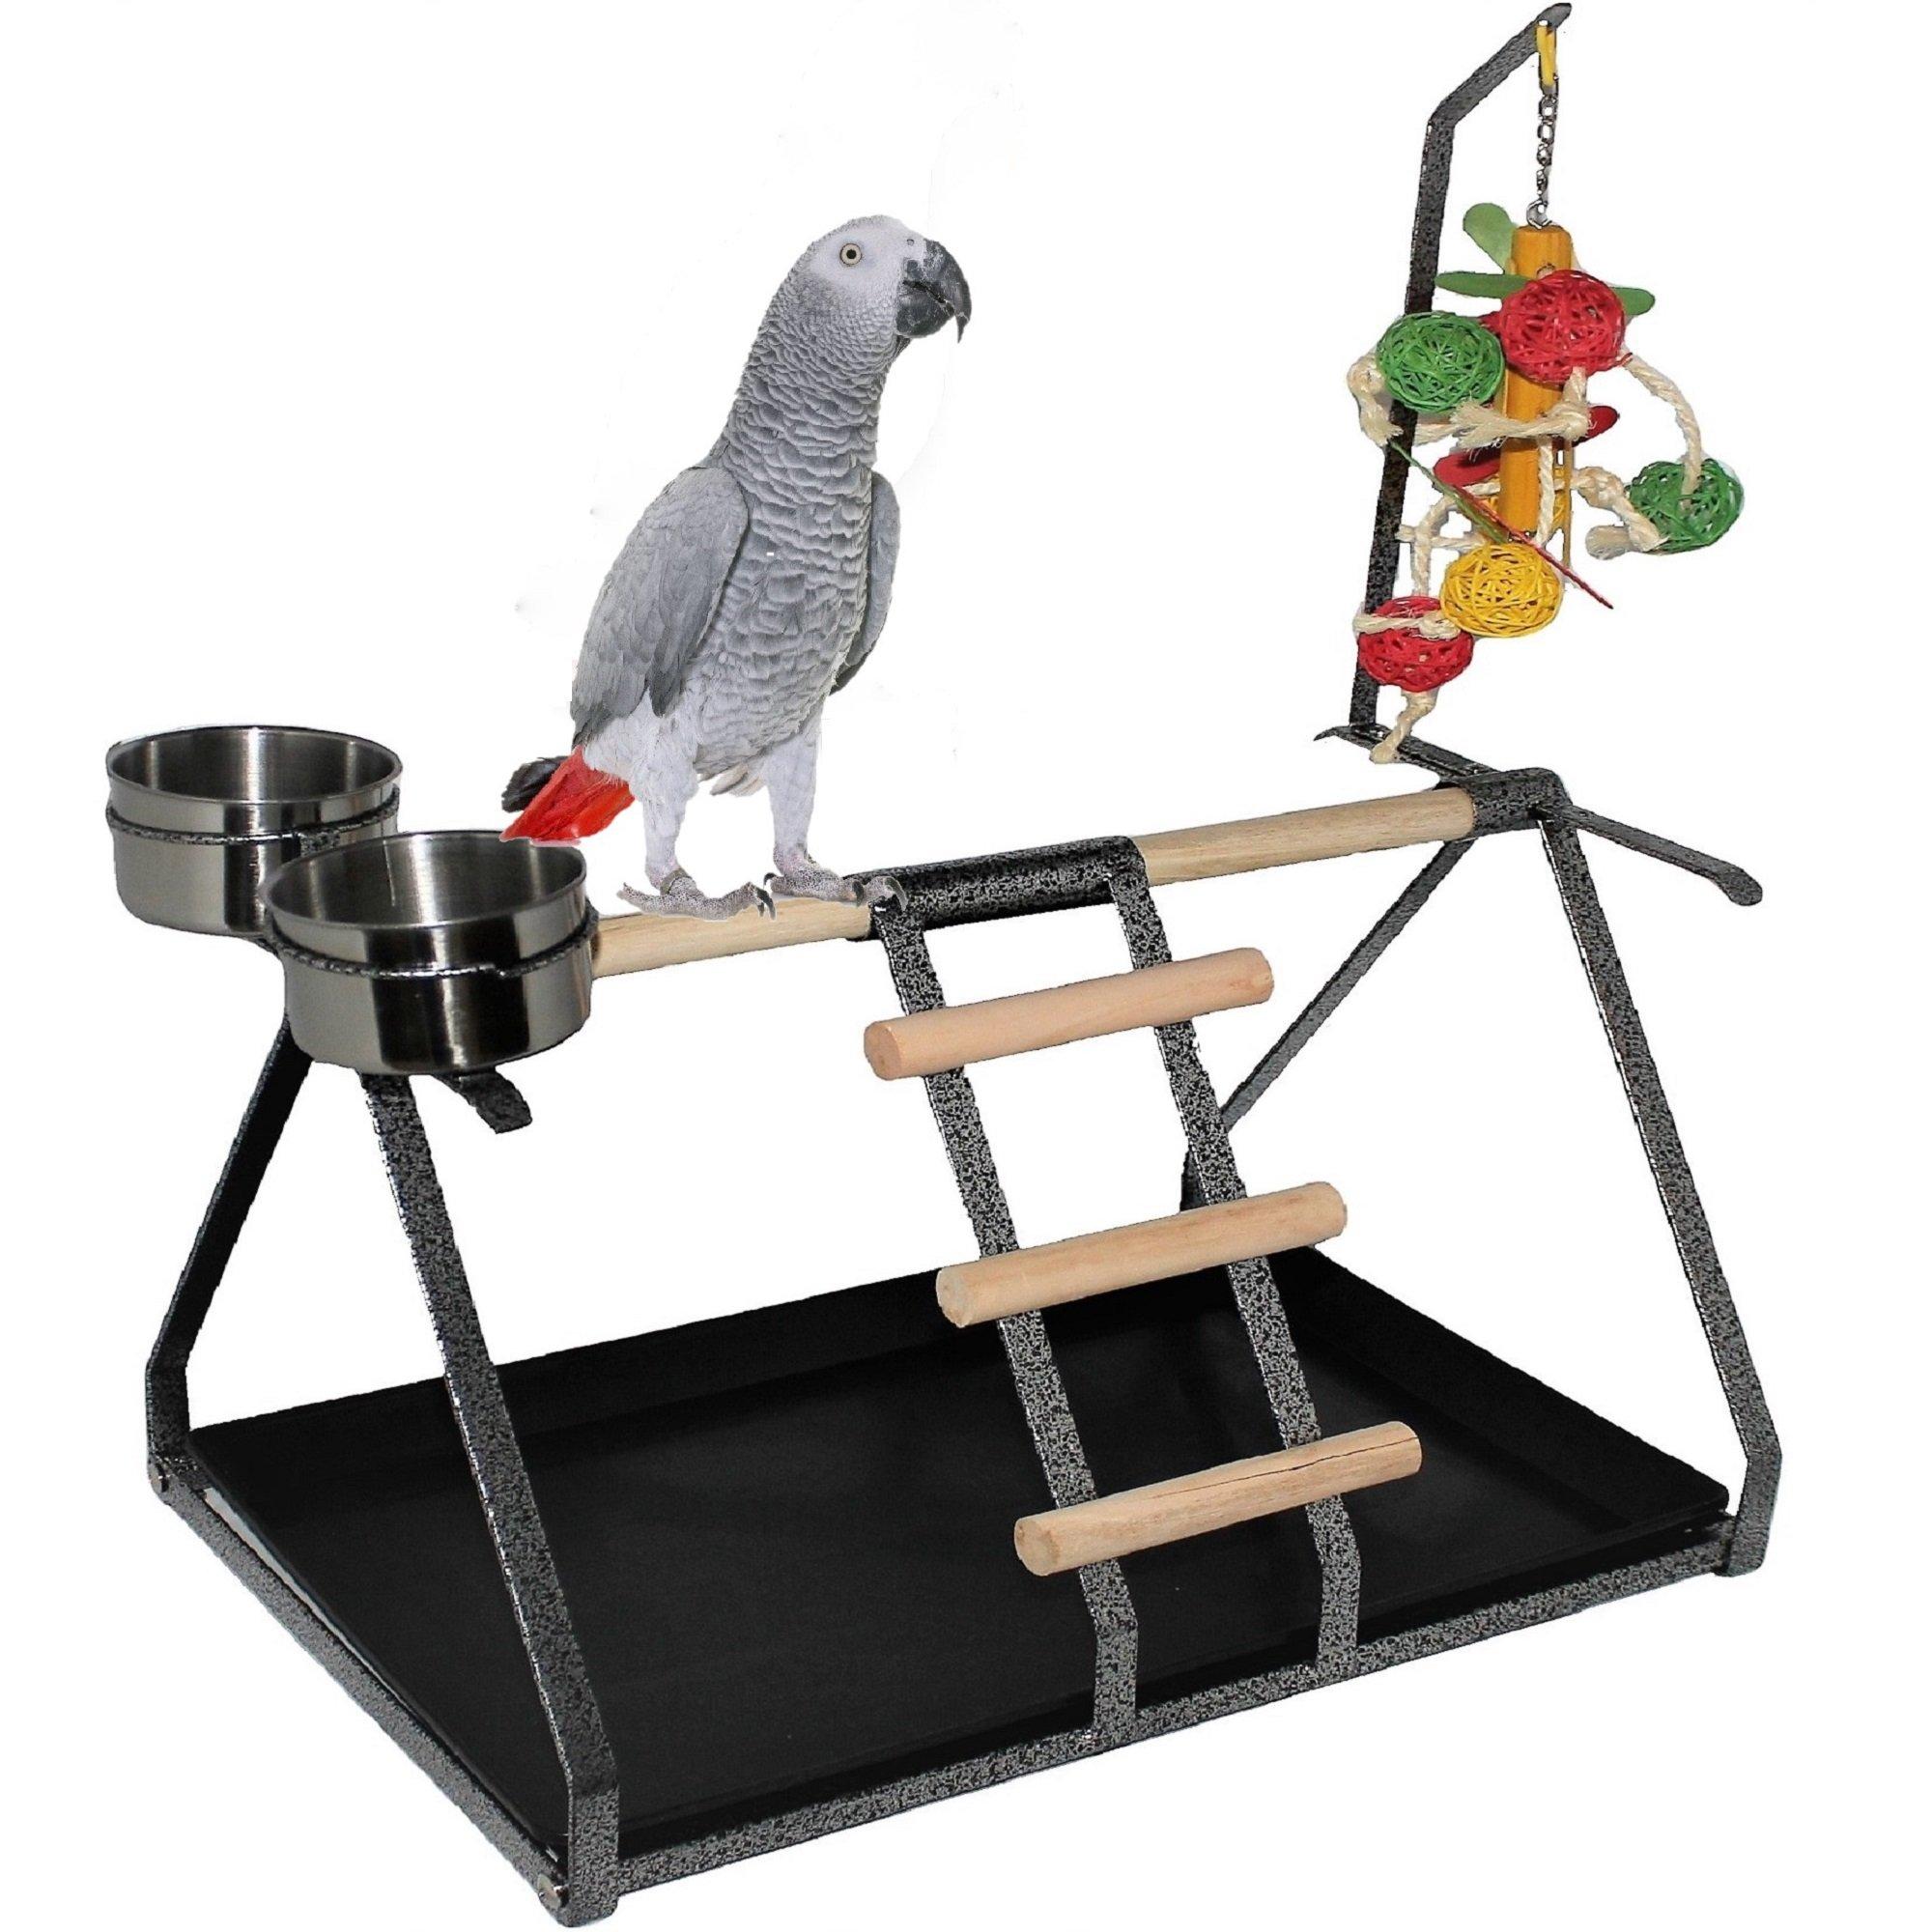 FDC Parrot Bird Perch Table Top Stand Metal Wood 2 Steel Cups Play for Medium and Large Breeds 17.5'' x 12.5'' x 11'' by FDC